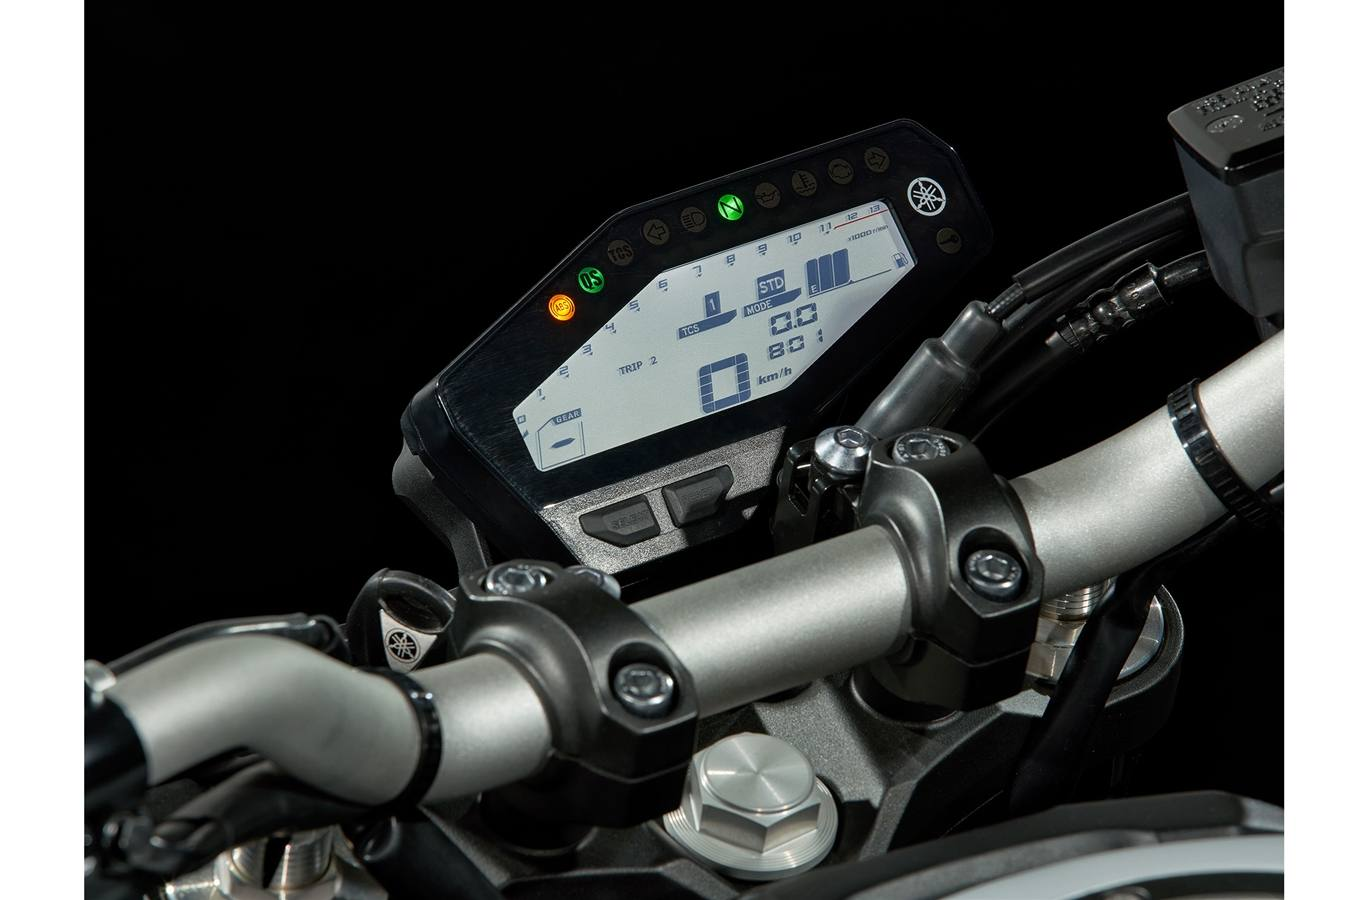 2019 Yamaha Mt 09 For Sale In Mahone Bay Ns Shore Cycle Off Receptacle To Light Switch Outside Lightincomotooutswitch Next